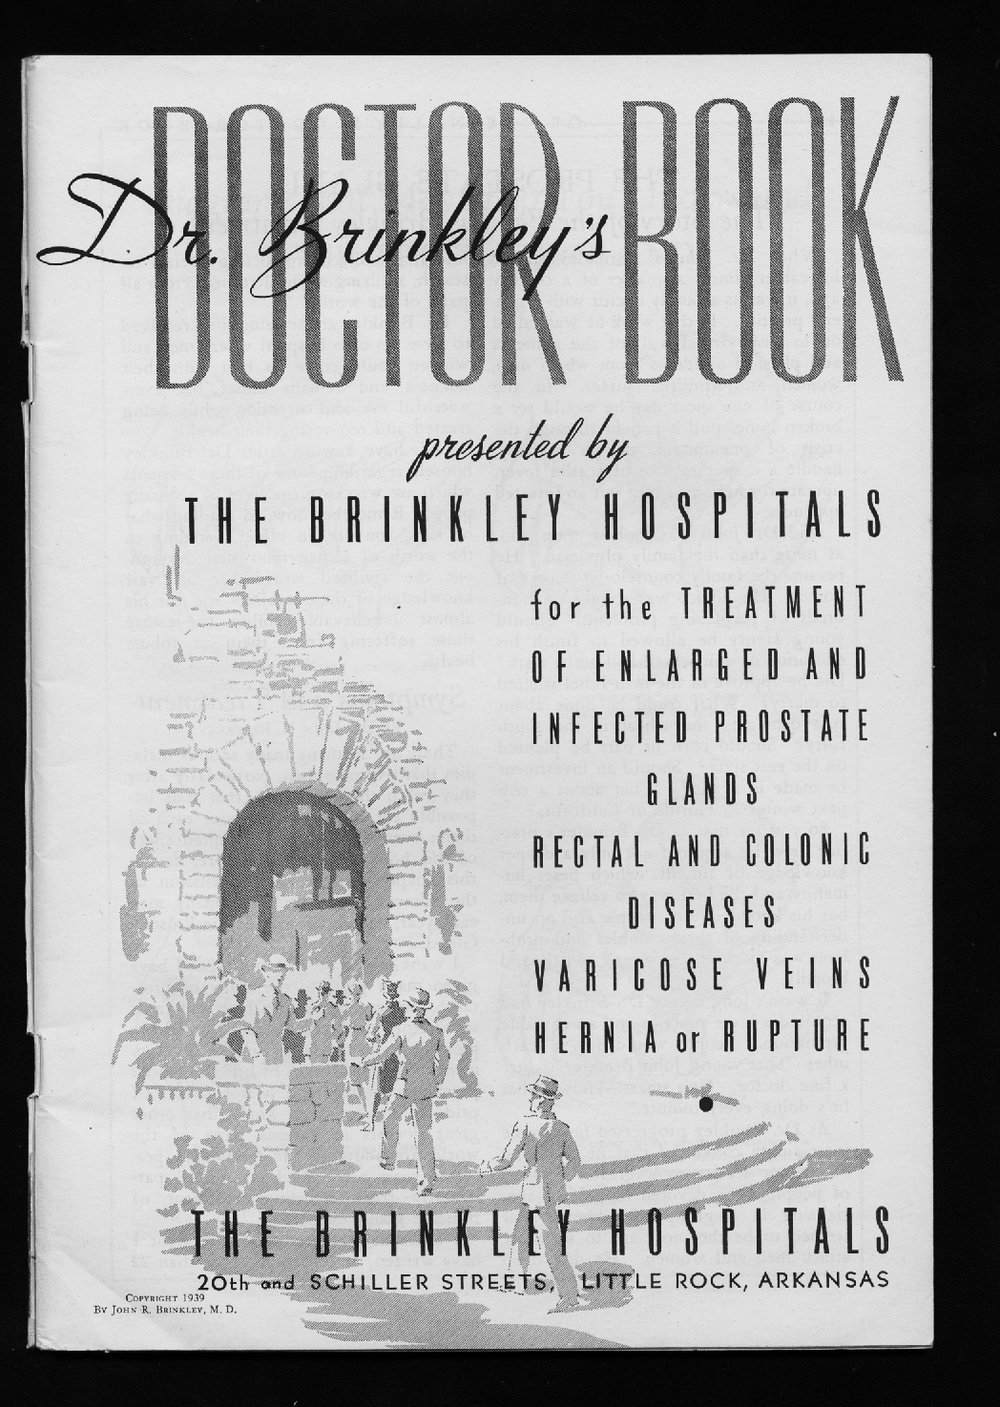 Dr. Brinkley's doctor book - Title Page